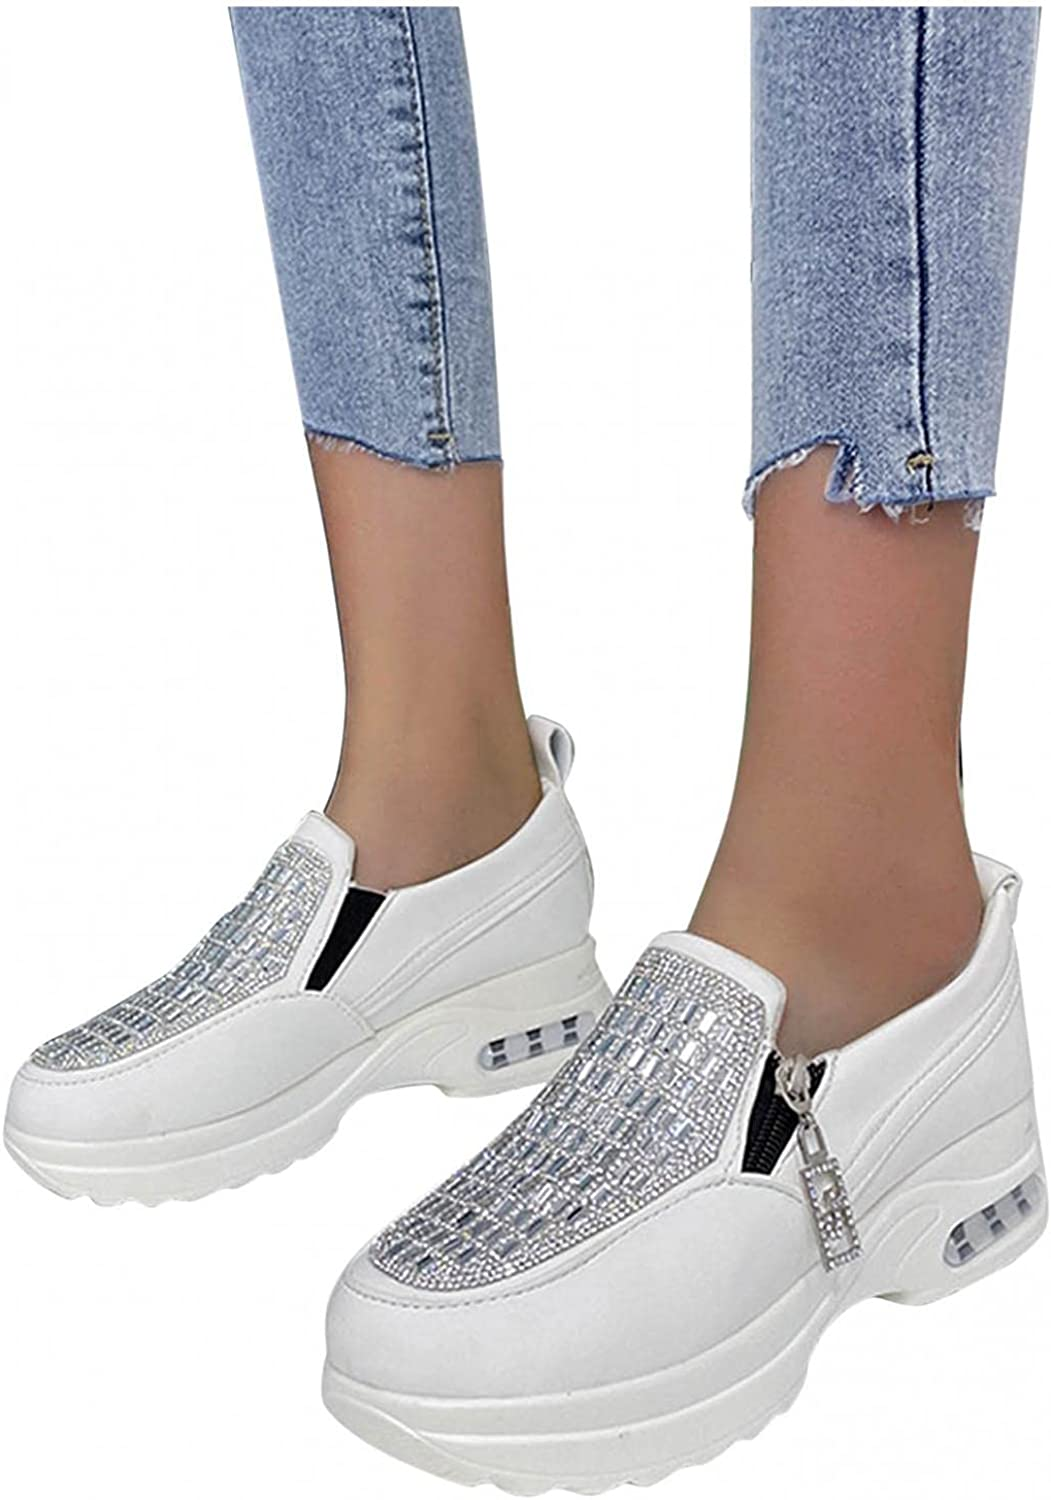 Hbeylia Fashion Sneakers For Women Glitter Rhinestones Platform Wedge Walking Shoes With Zipper Fashion Casual Comfortable Slip On Loafers Low Top Play Sneakers For Ladies Girls Work Daily Dress